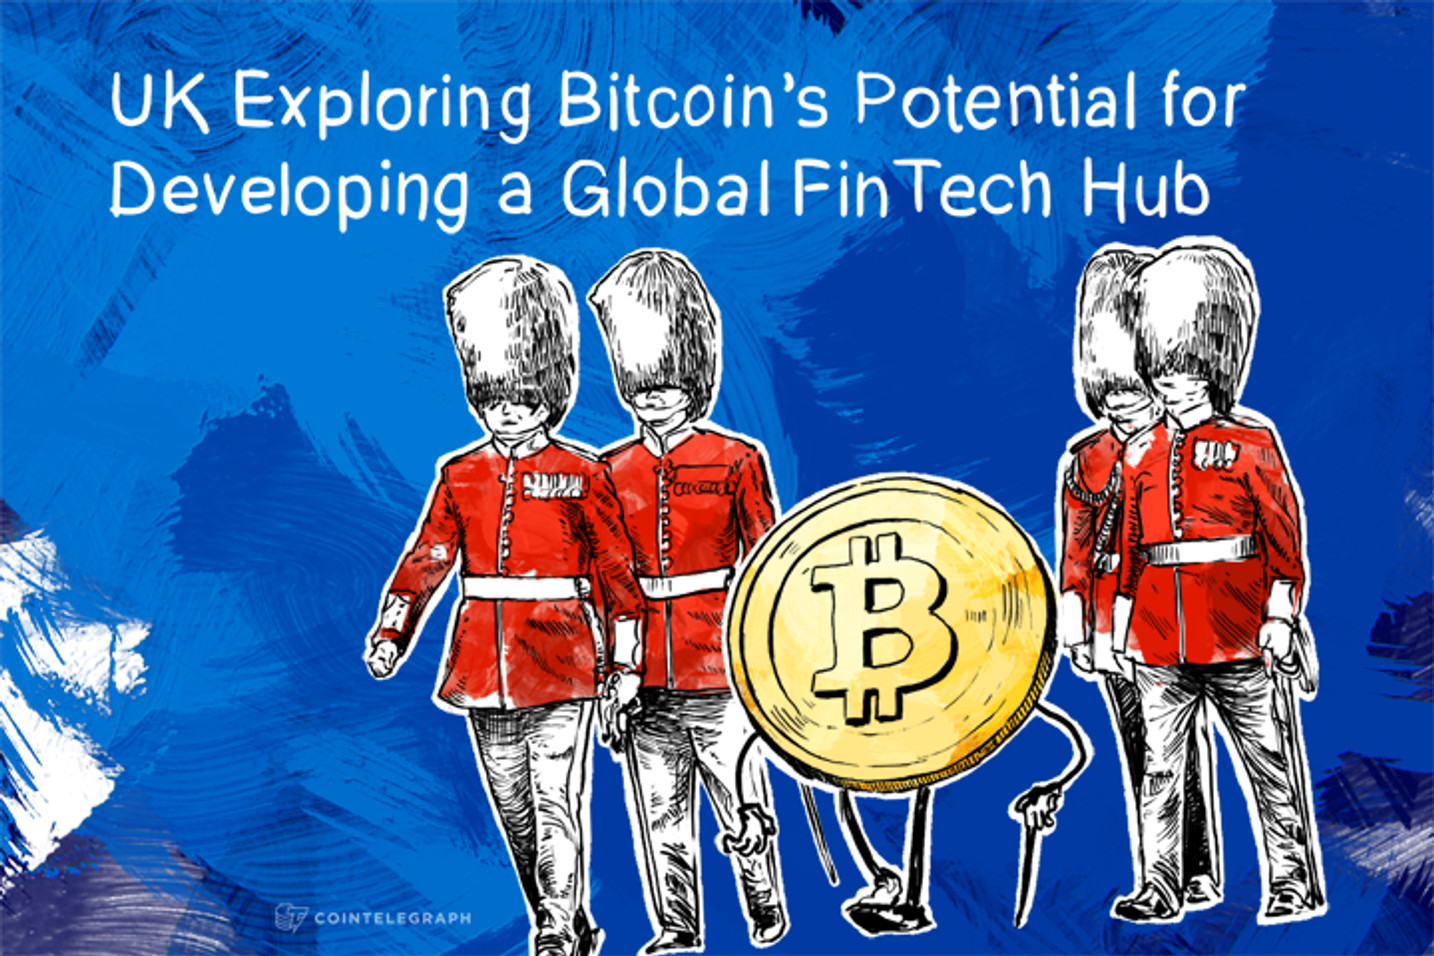 UK Exploring Bitcoin's Potential for Developing a Global FinTech Hub